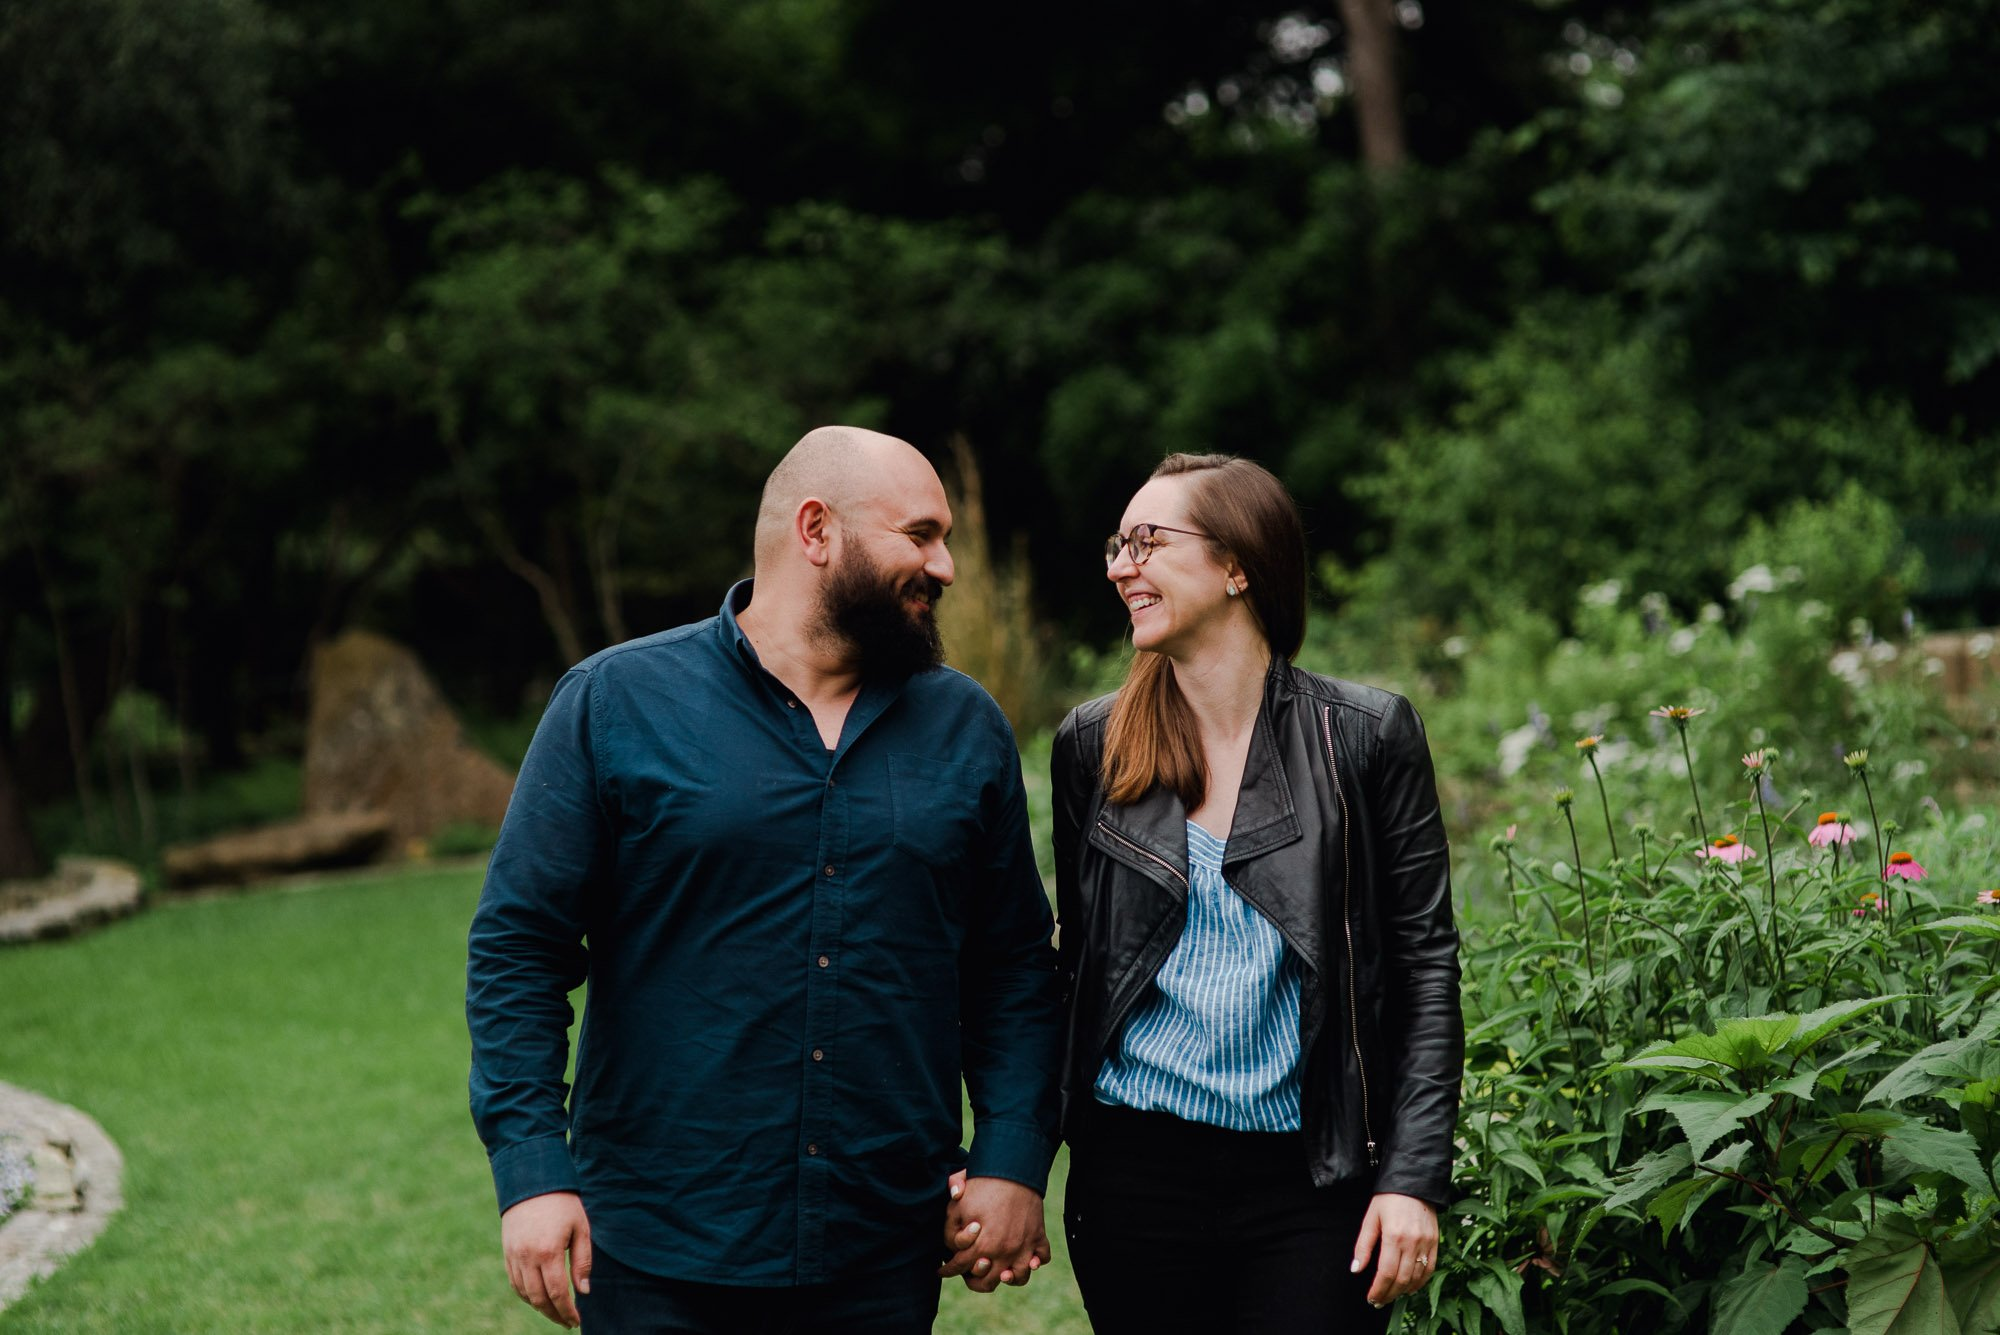 engagement photos at a botanical garden, cloudy day engagement photos, austin engagement photos at a botanical garden, proposal photos at a garden